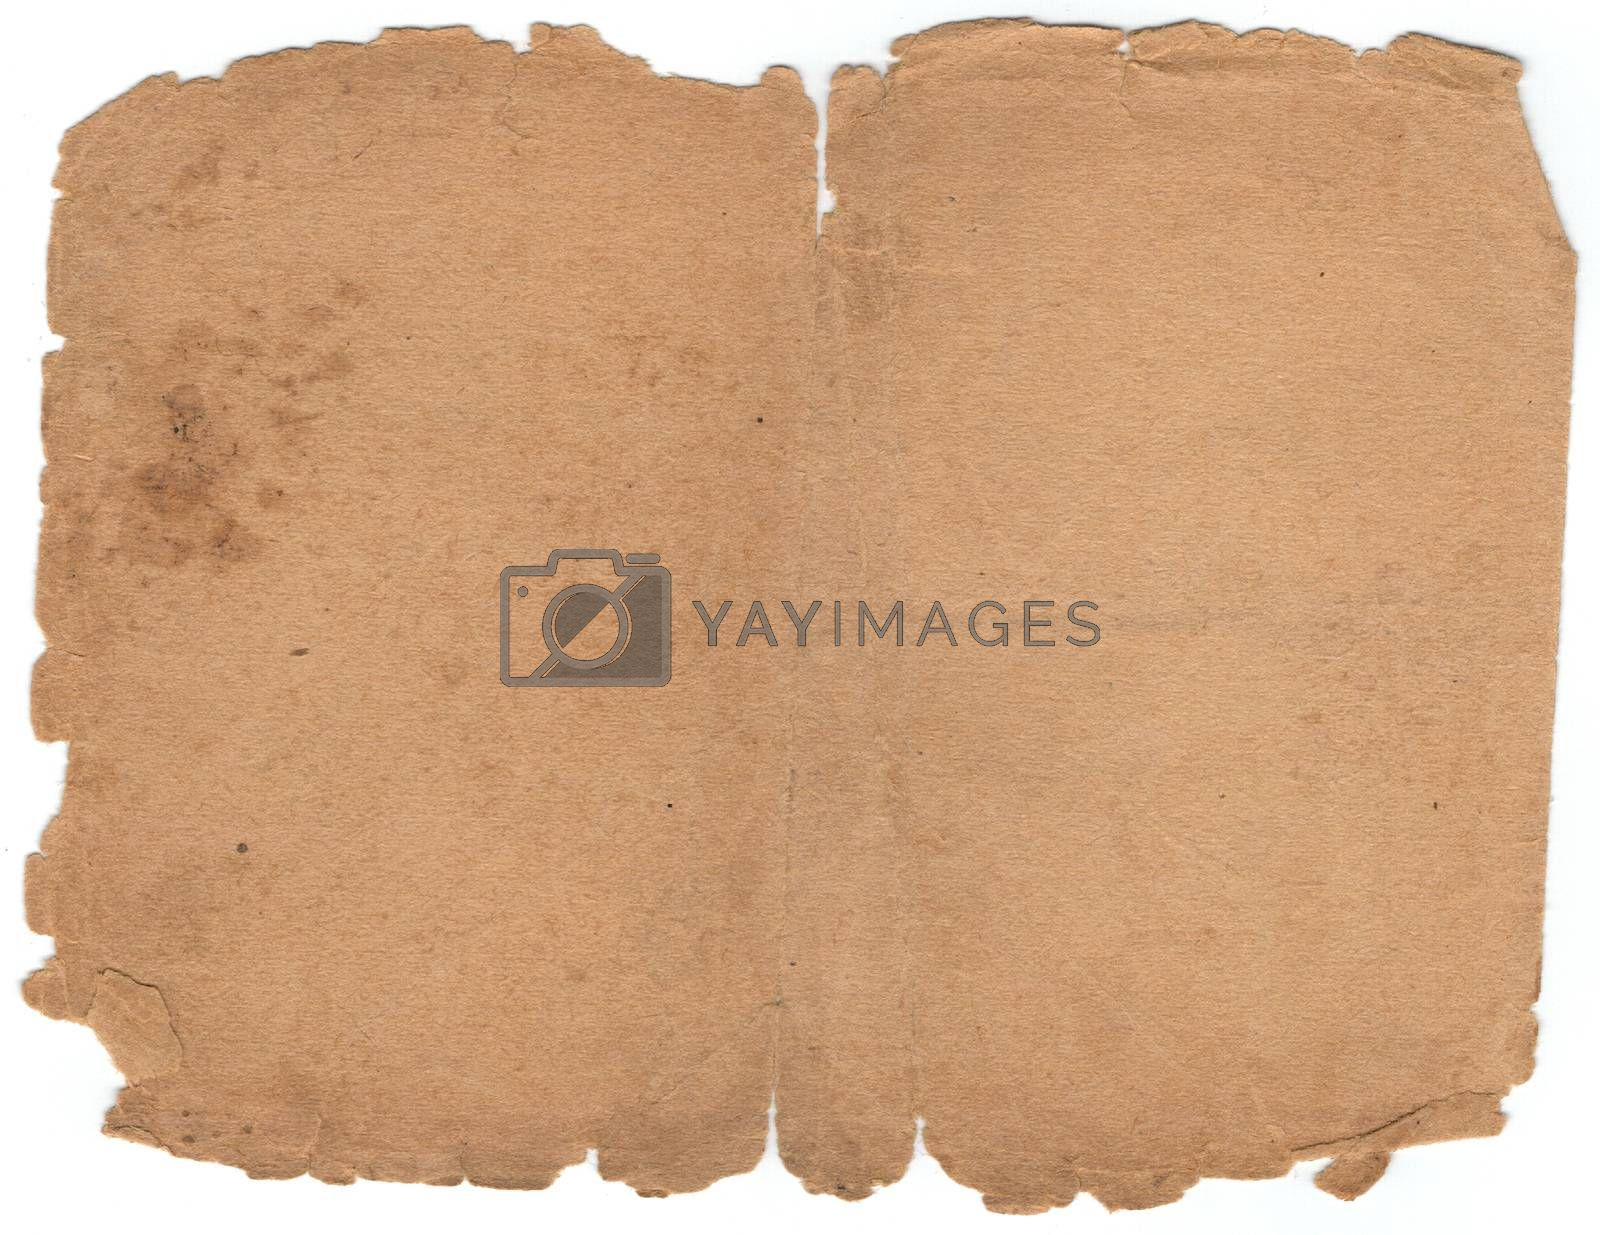 Royalty free image of brown old paper by CherJu